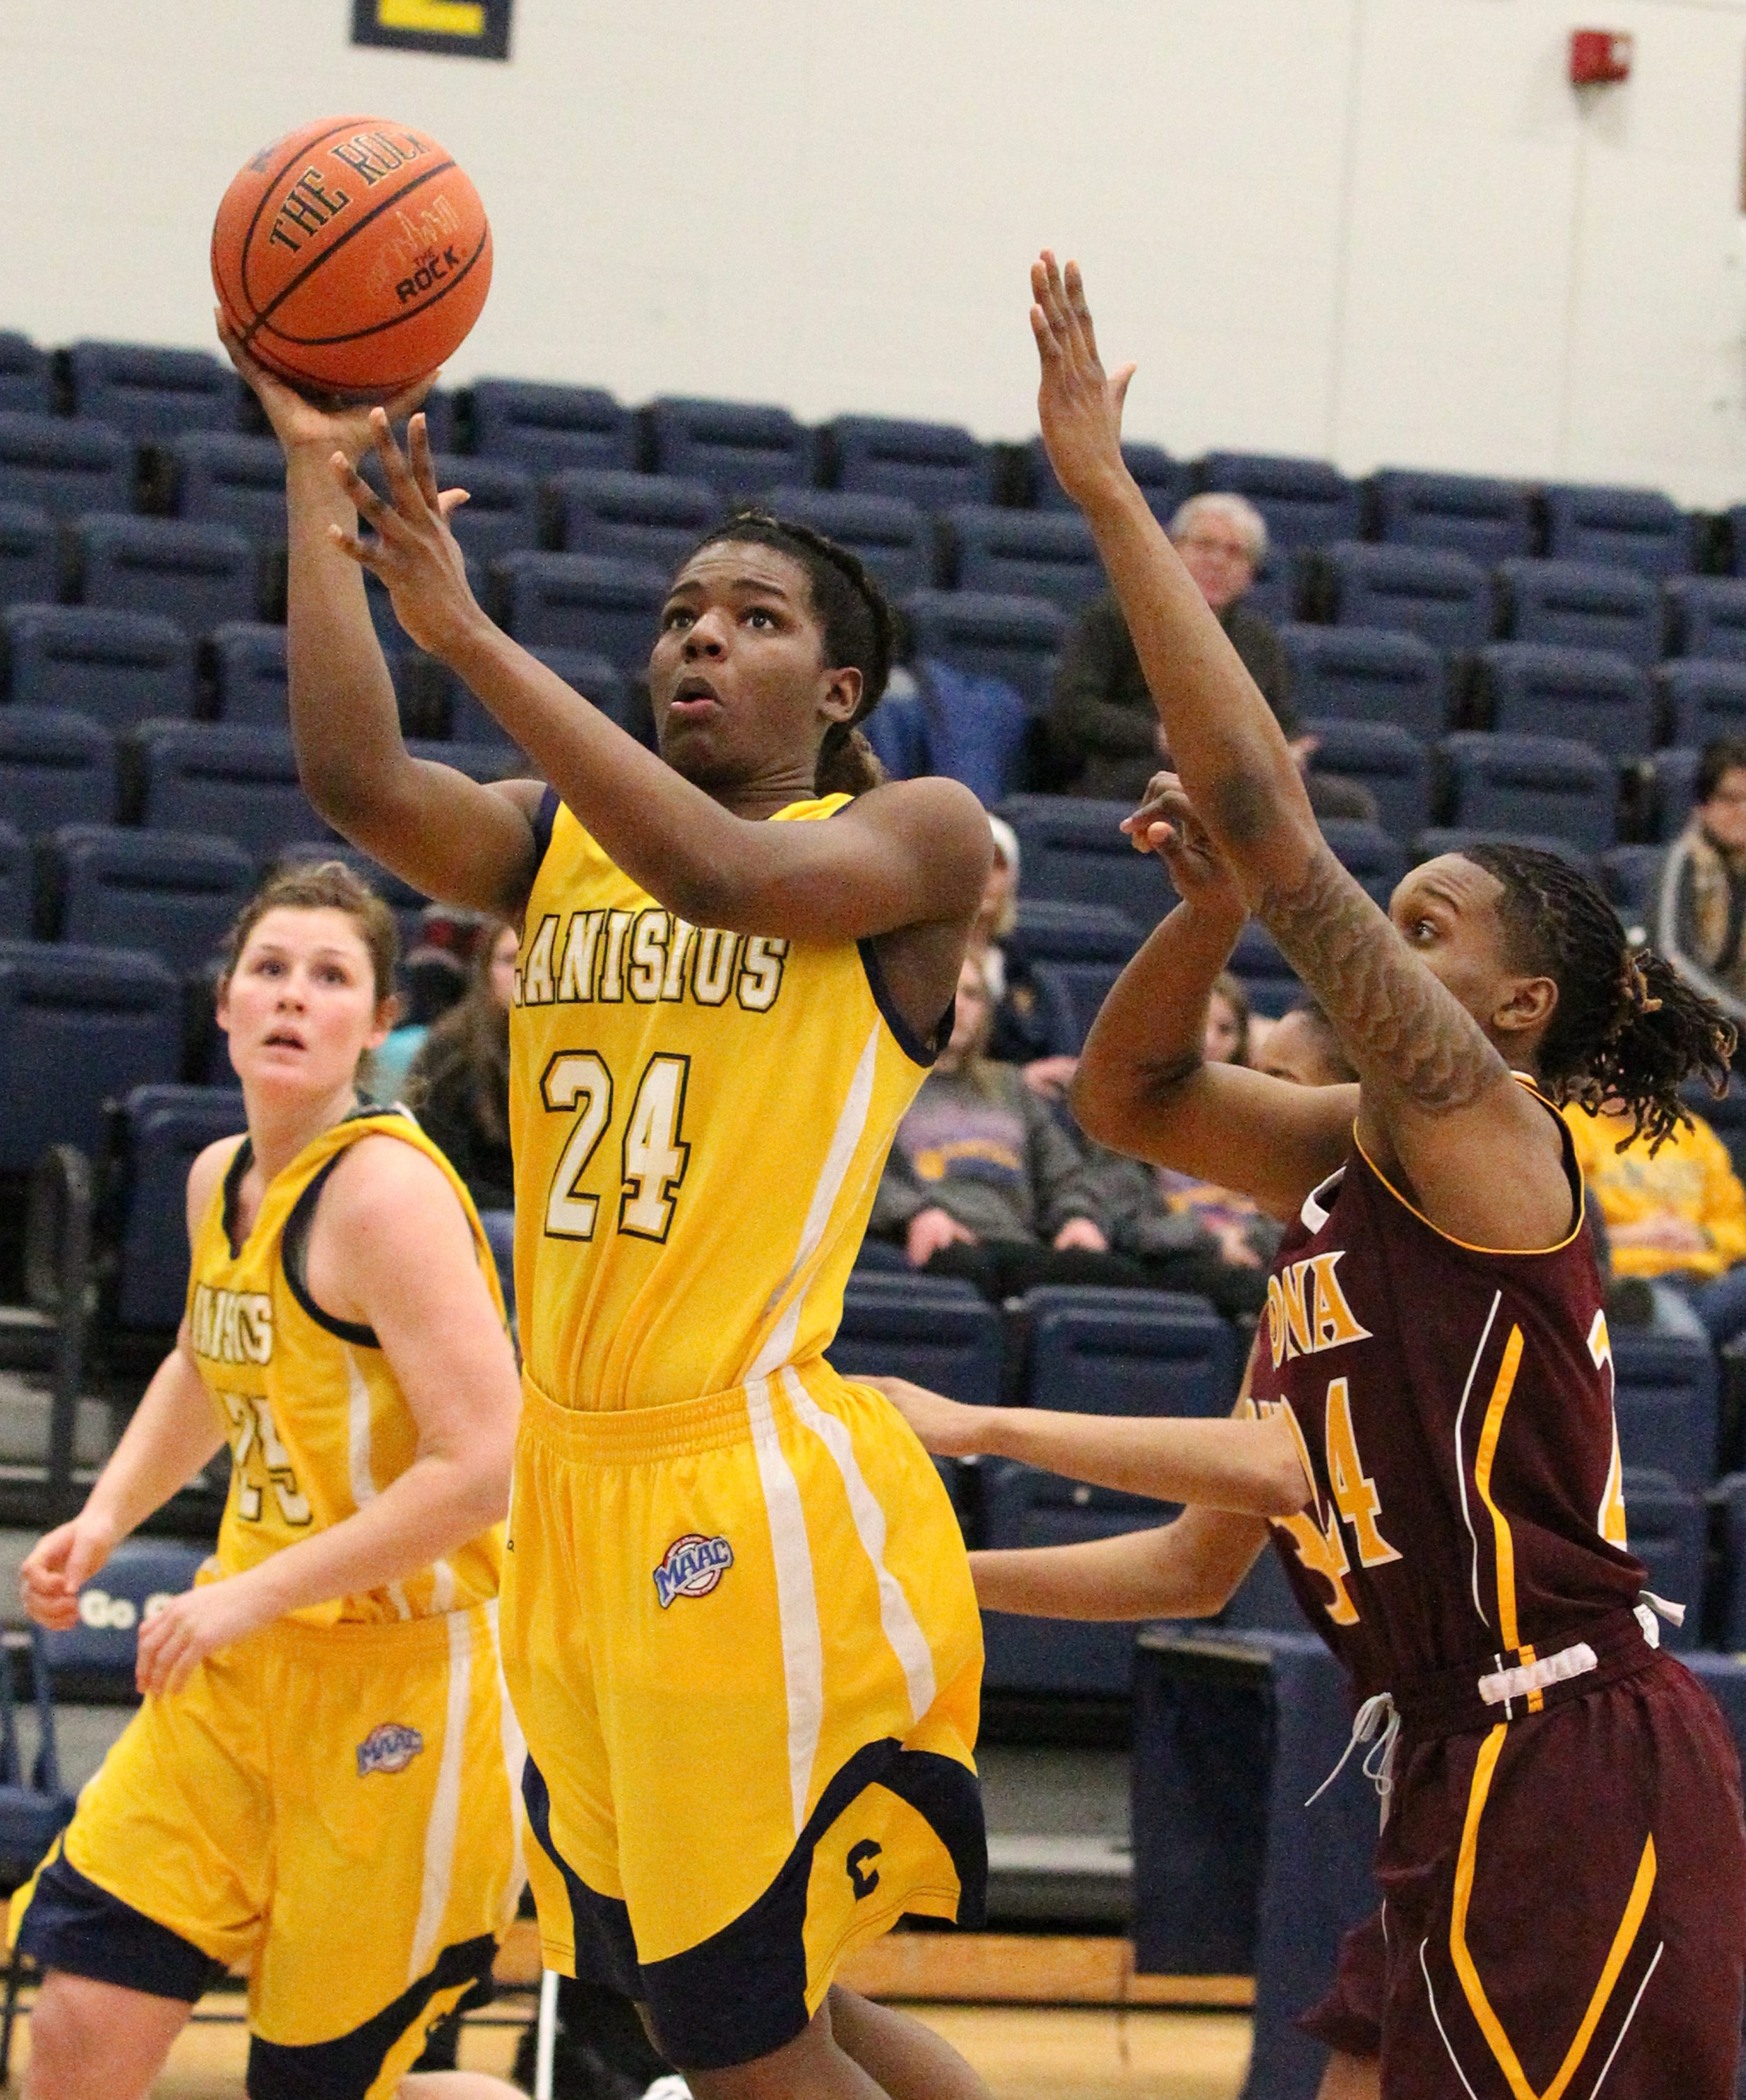 Crystal Porter (24) of Canisius scores two points over Iona's Joy Adams (24) in the first half of Iona's victory at the Koessler Athletic Center.